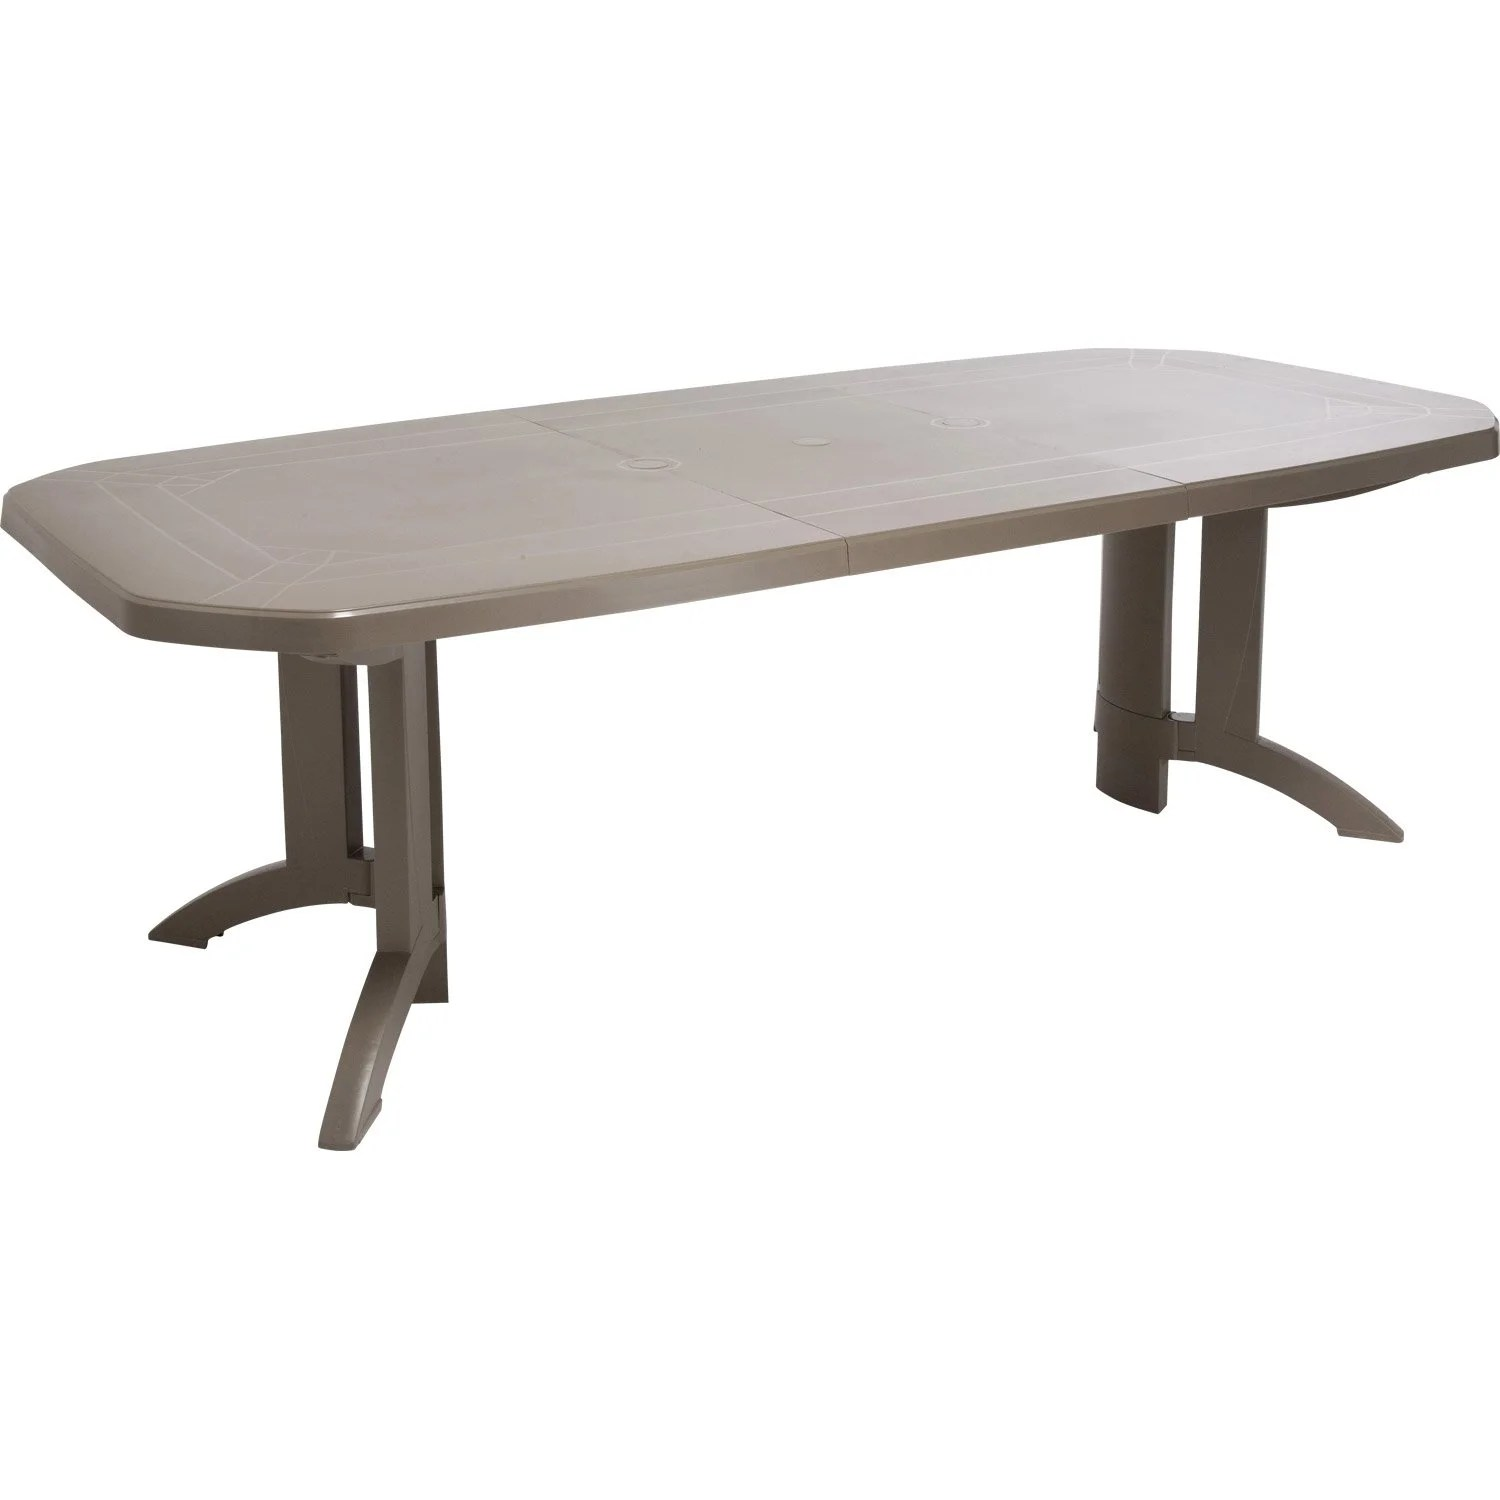 Table De Jardin Table De Jardin Grosfillex Véga Rectangulaire Taupe 10